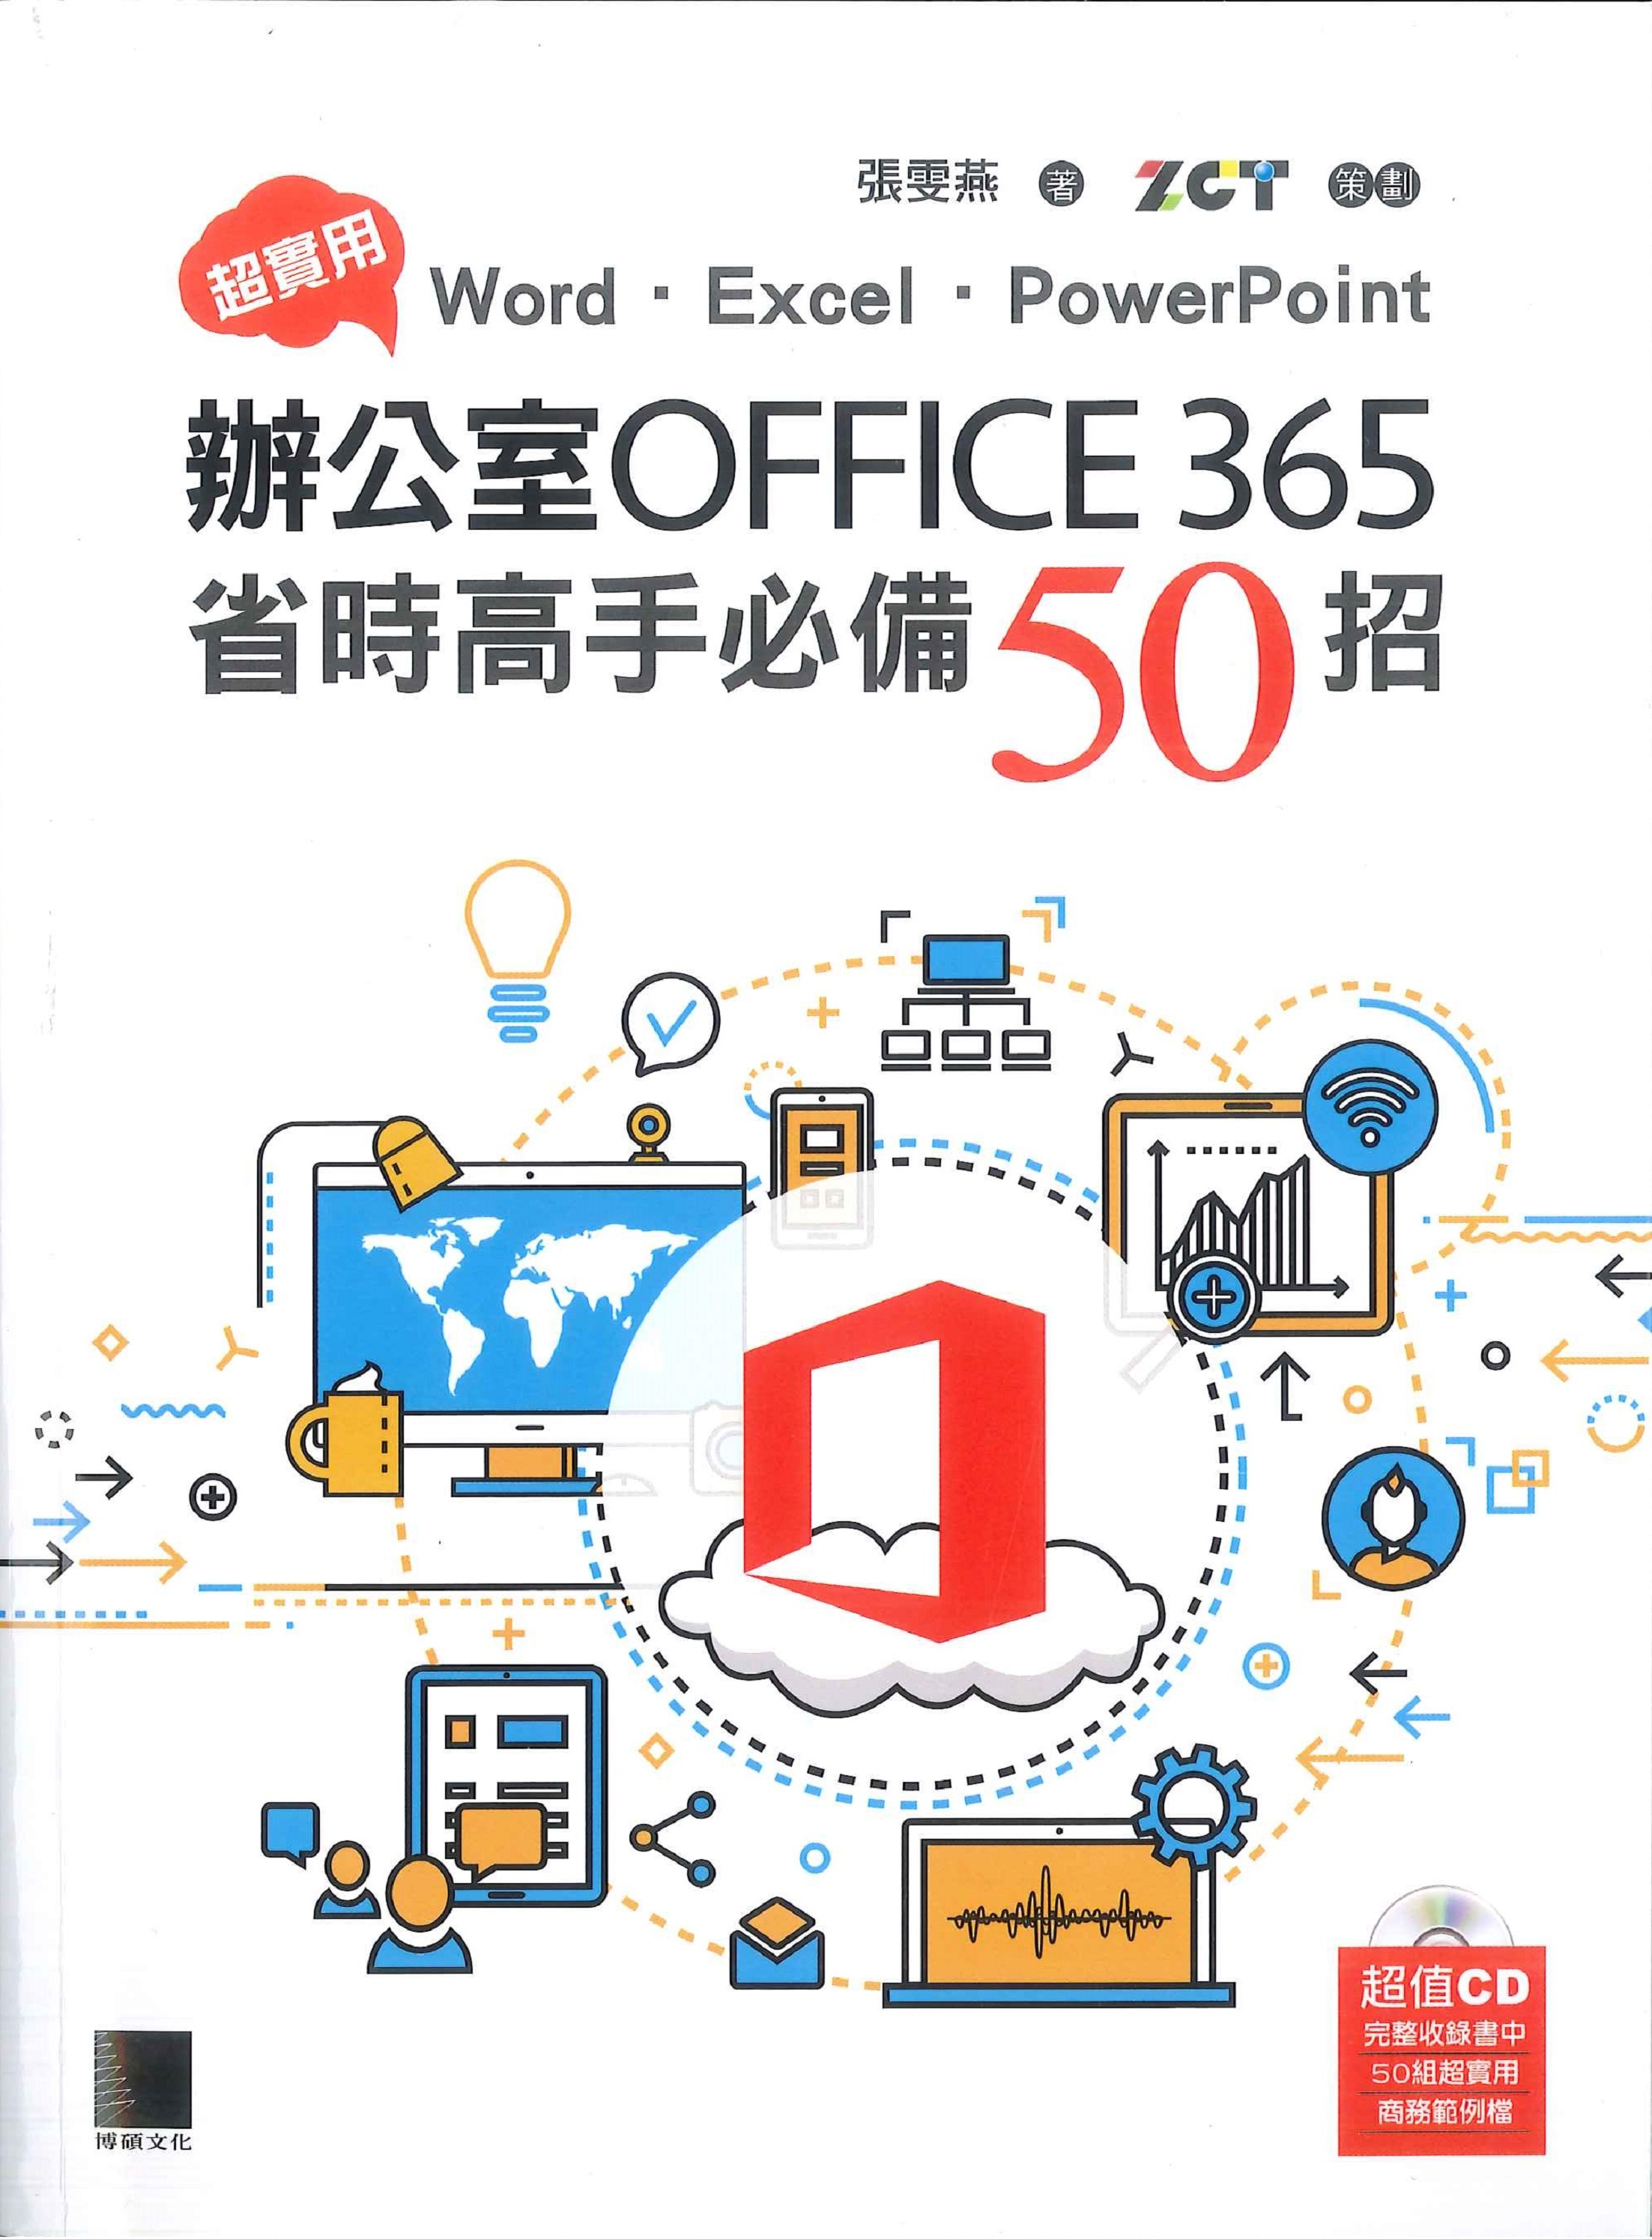 超實用!Word.Excel.PowerPoint 辦公室Office 365省時高手必備50招